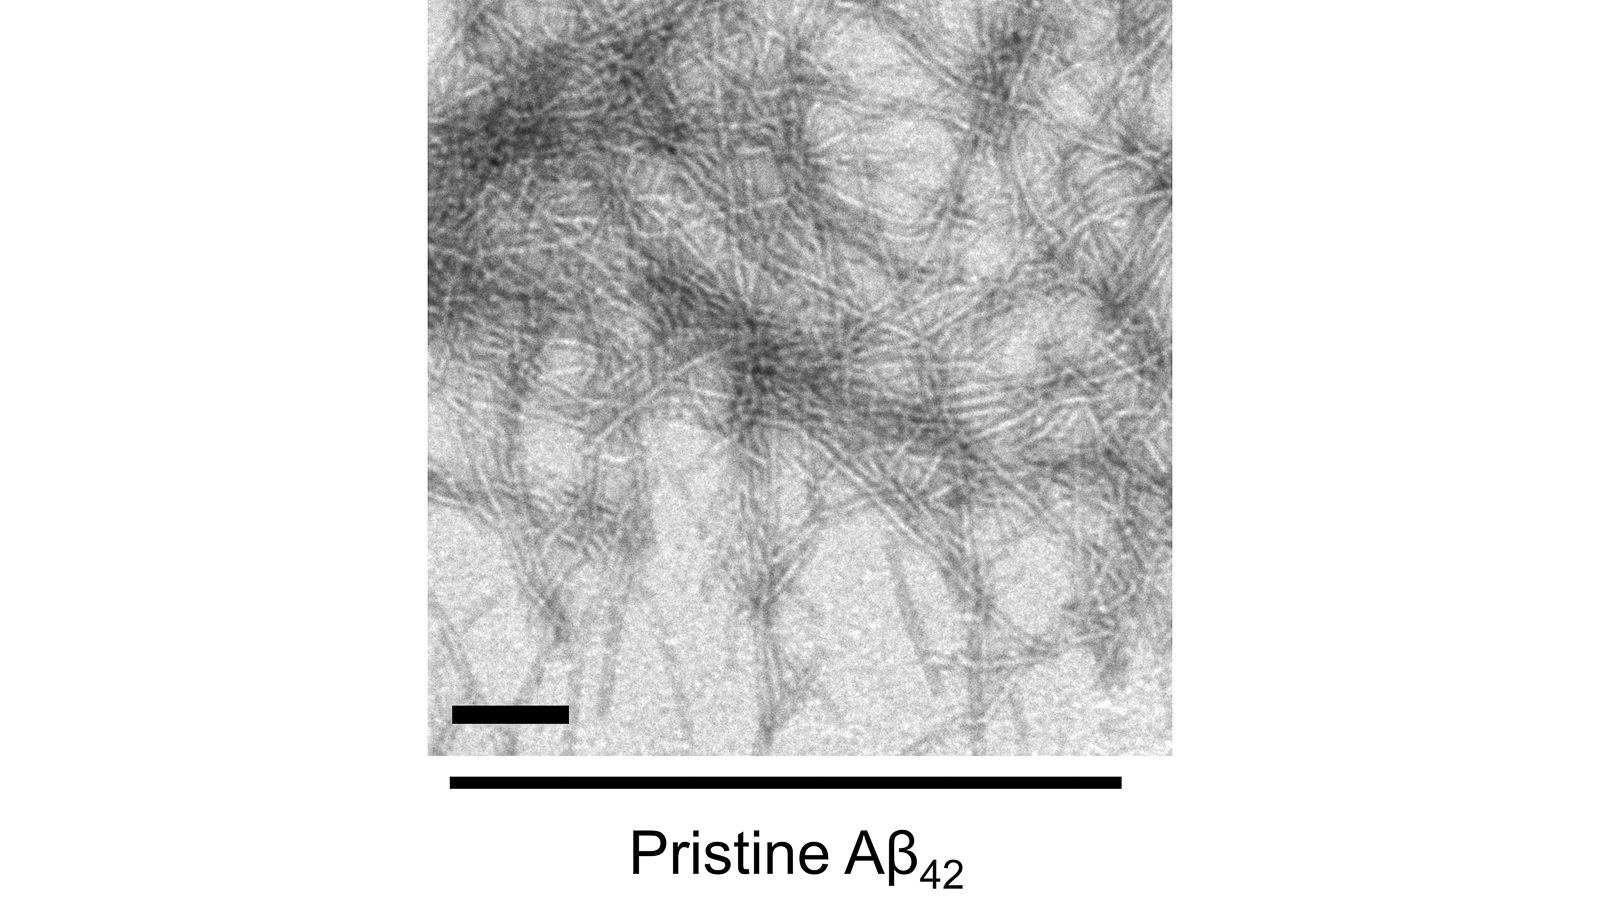 Transmission Electron Microscopy (TEM) images of Aβ peptide samples in the absence of the Aβ nanodevices (scale bar: 200 nm). The grains in the image are the peptides that, when left together, are prone to self-aggregation. (Image by Argonne's Center for Nanoscale Materials.)